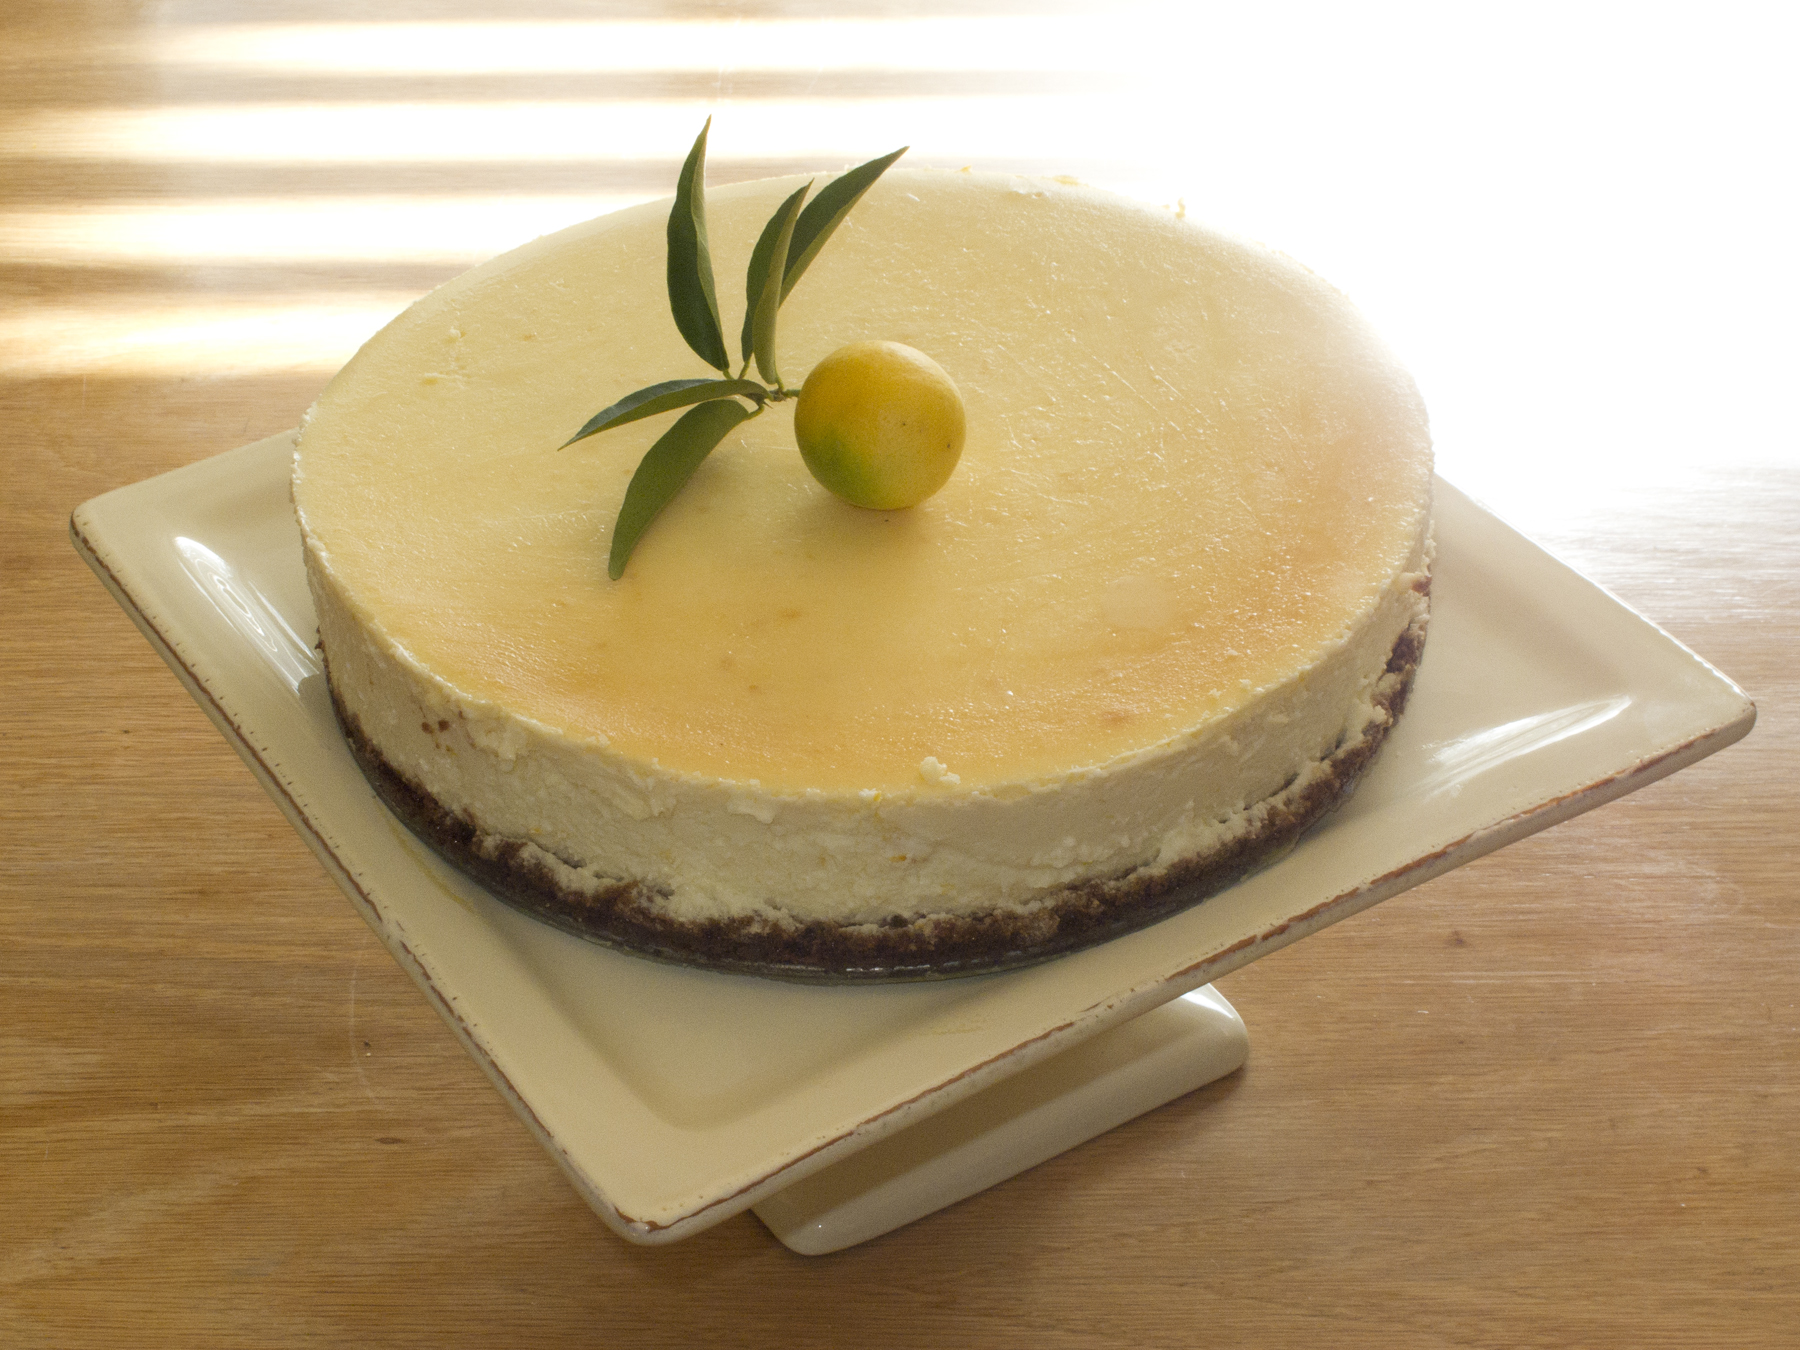 Lemon Cheesecake with Gingersnap Crust | Mod Meals on Mendenhall